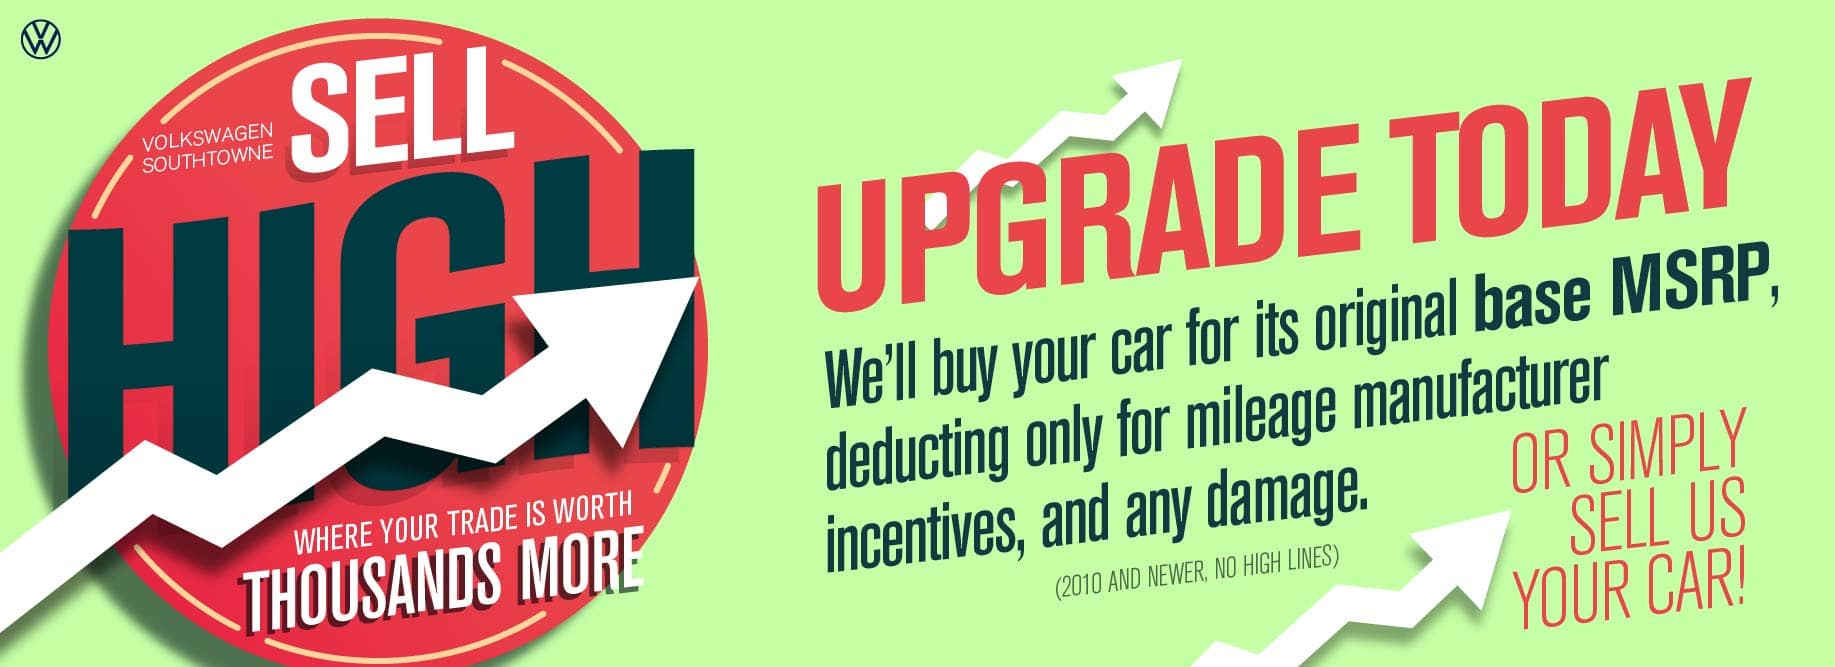 Your car has never been worth more! Sell it to VW SouthTowne